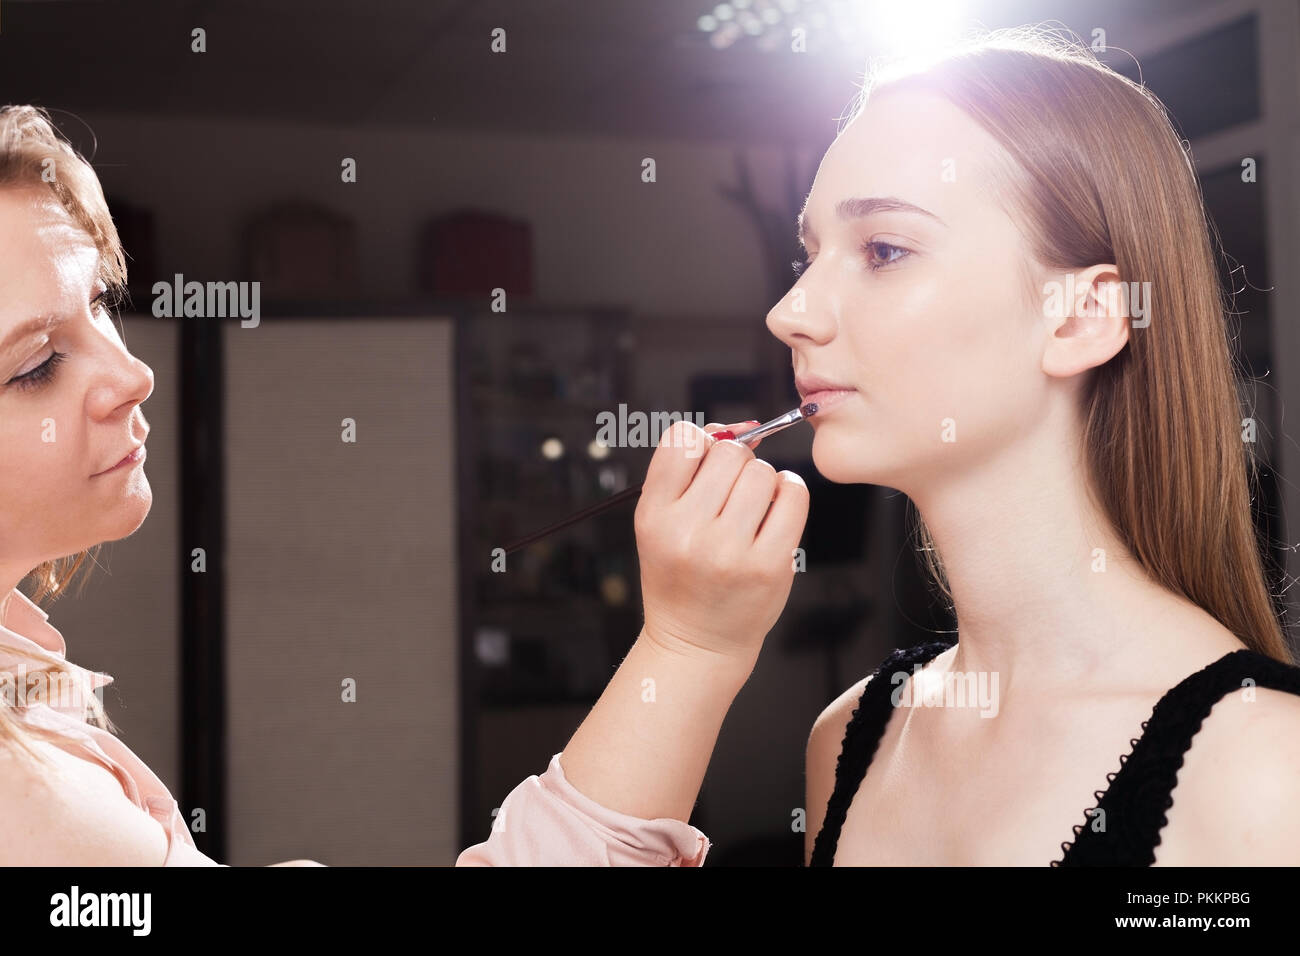 makeup artist applying a lip gloss on lips of a young pretty client. concept of professional make up couching - Stock Image